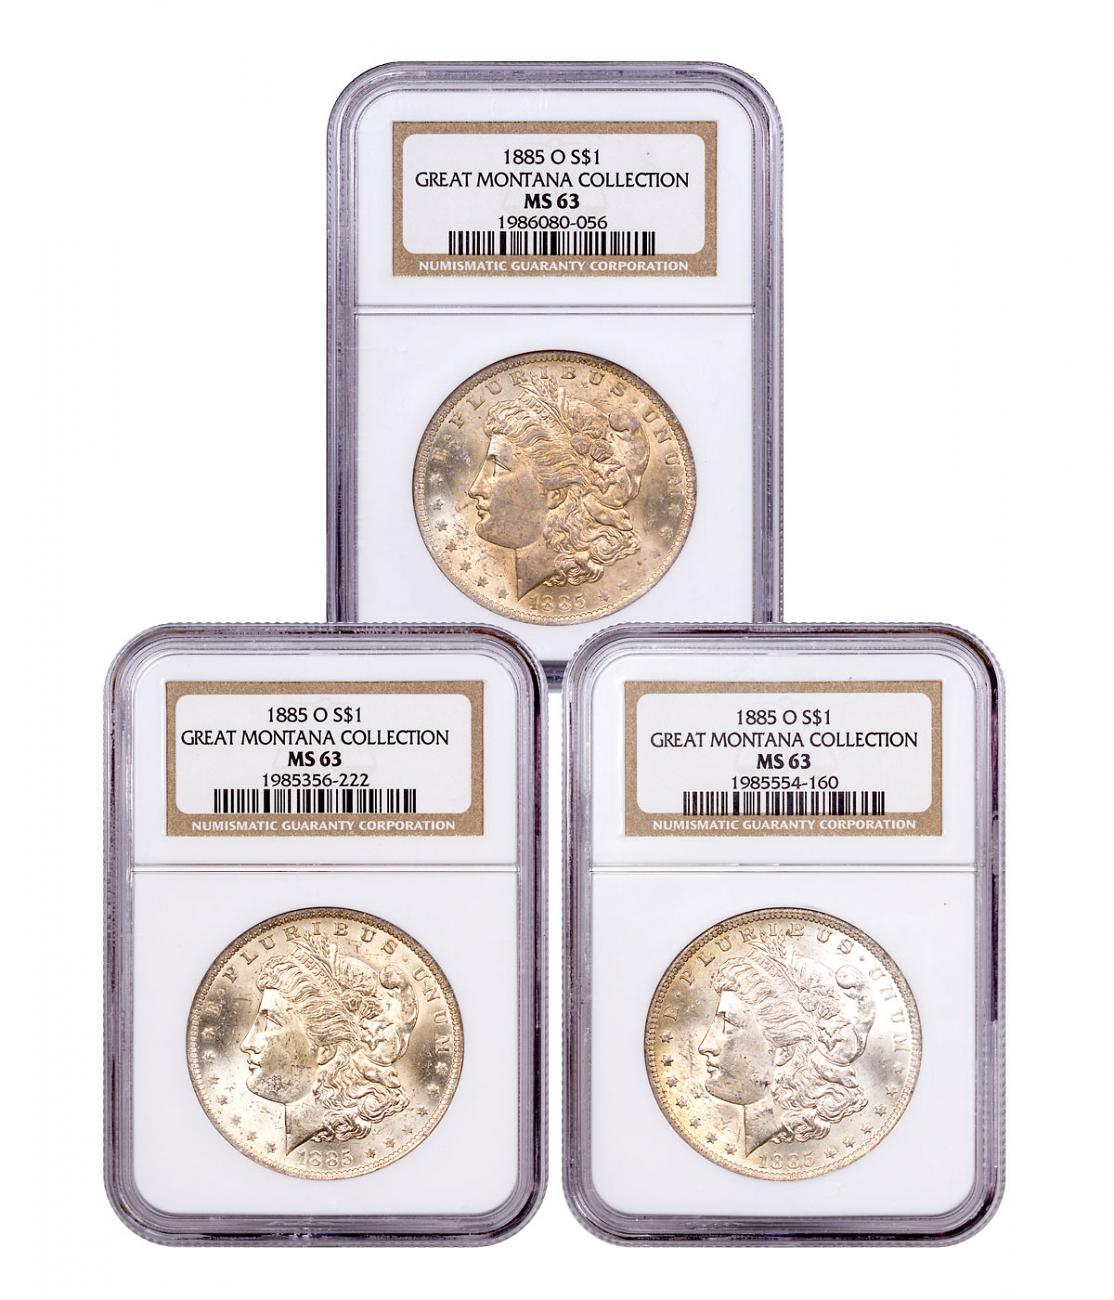 3-Coin Set - 1885-O Morgan Silver Dollar From the Great Montana Collection NGC MS63 Toned CPCR 0056